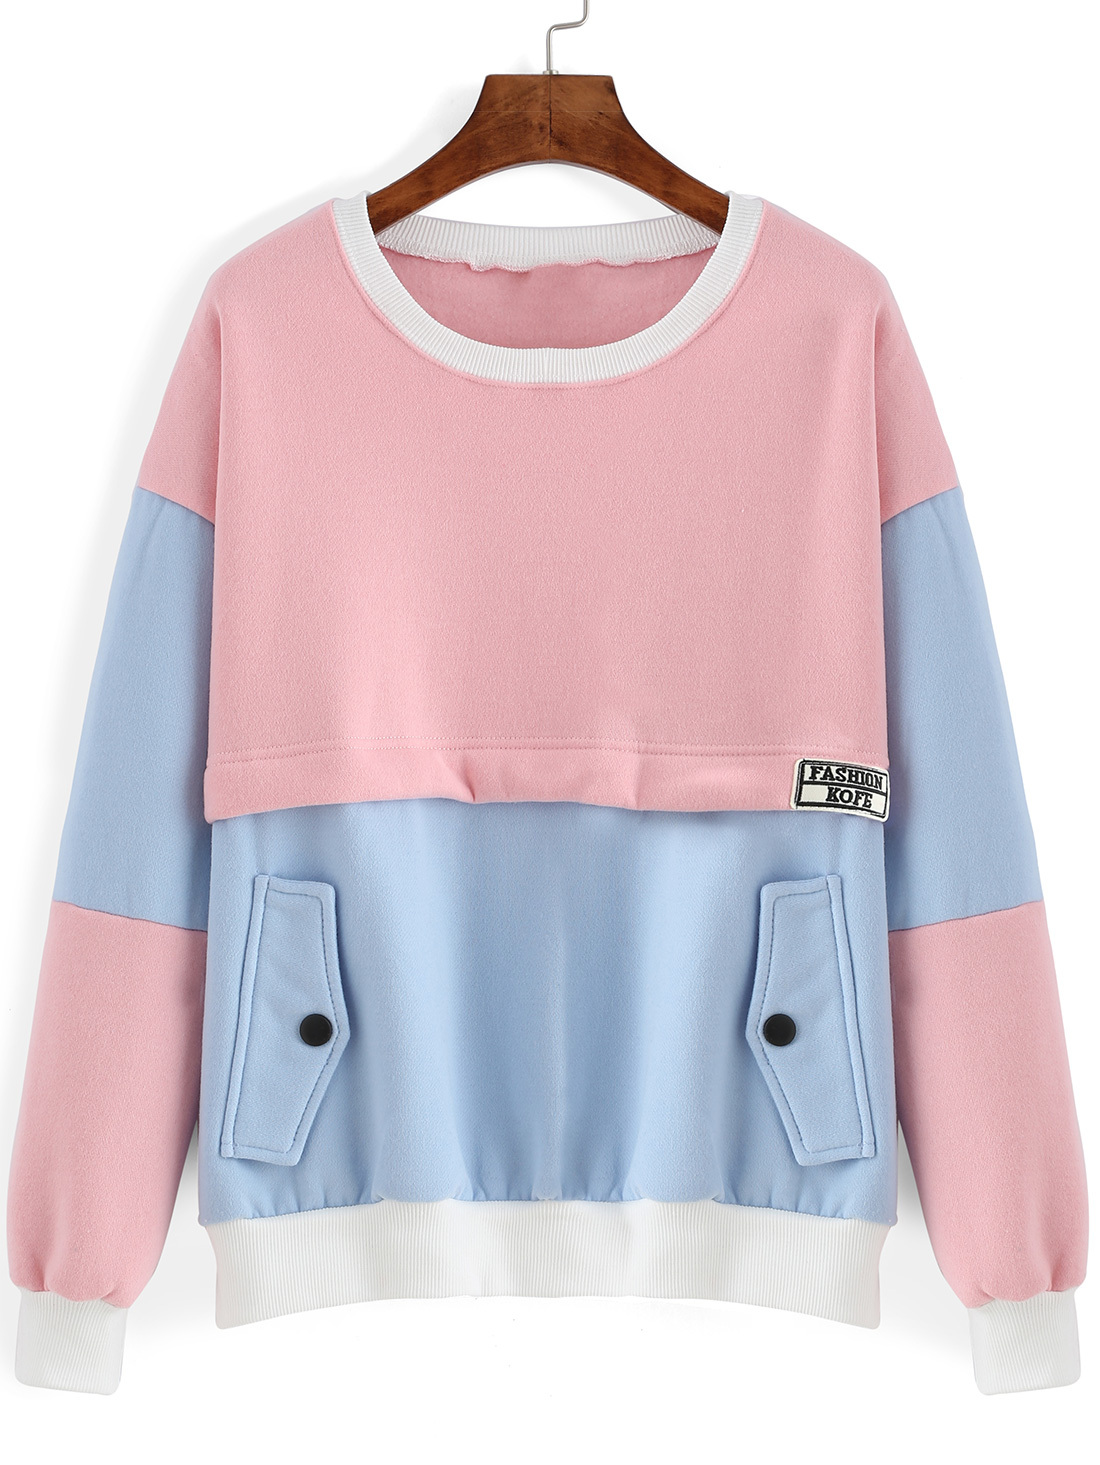 Blue And Pink Hoodie - Hardon Clothes